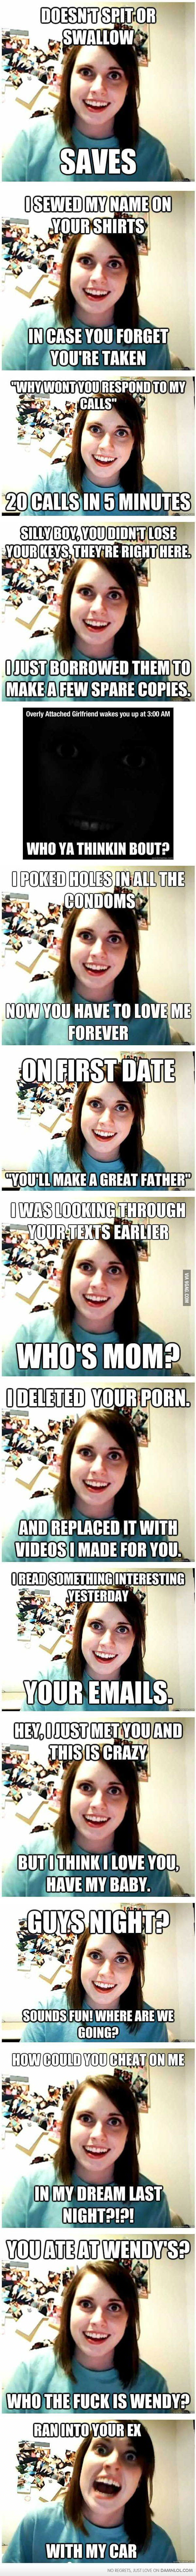 Overly Attached Girlfriend Compilation